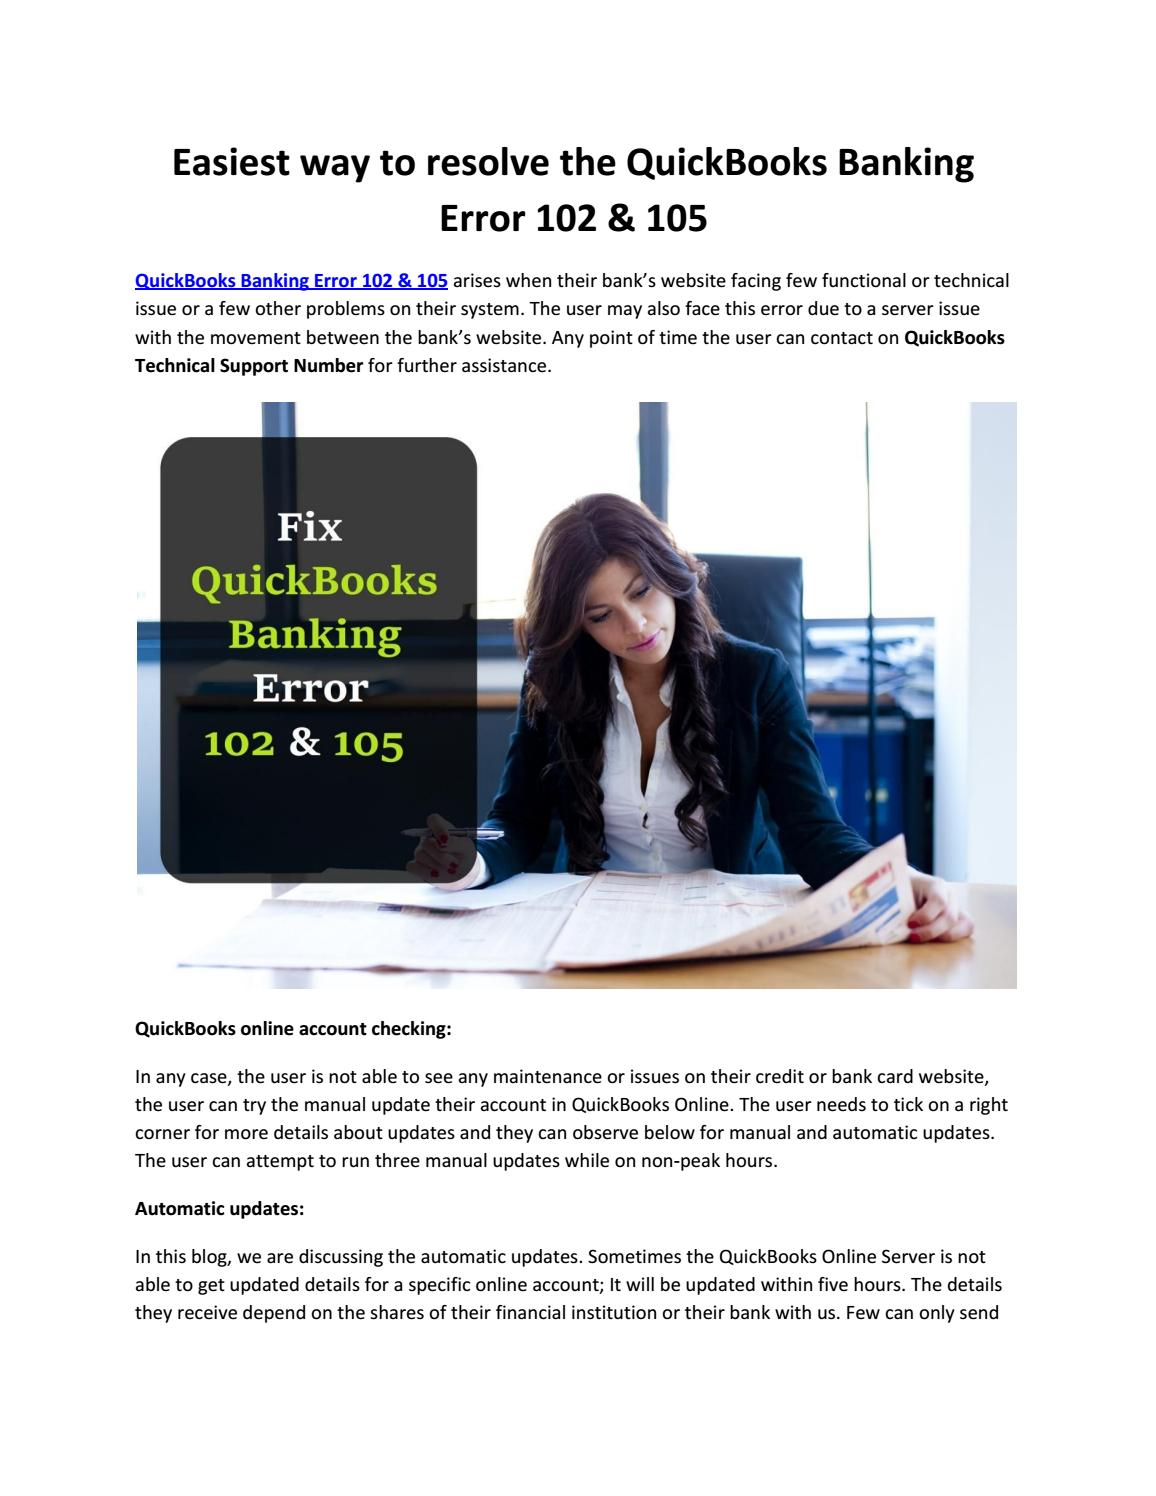 Easiest way to resolve the QuickBooks Banking Error 102 by